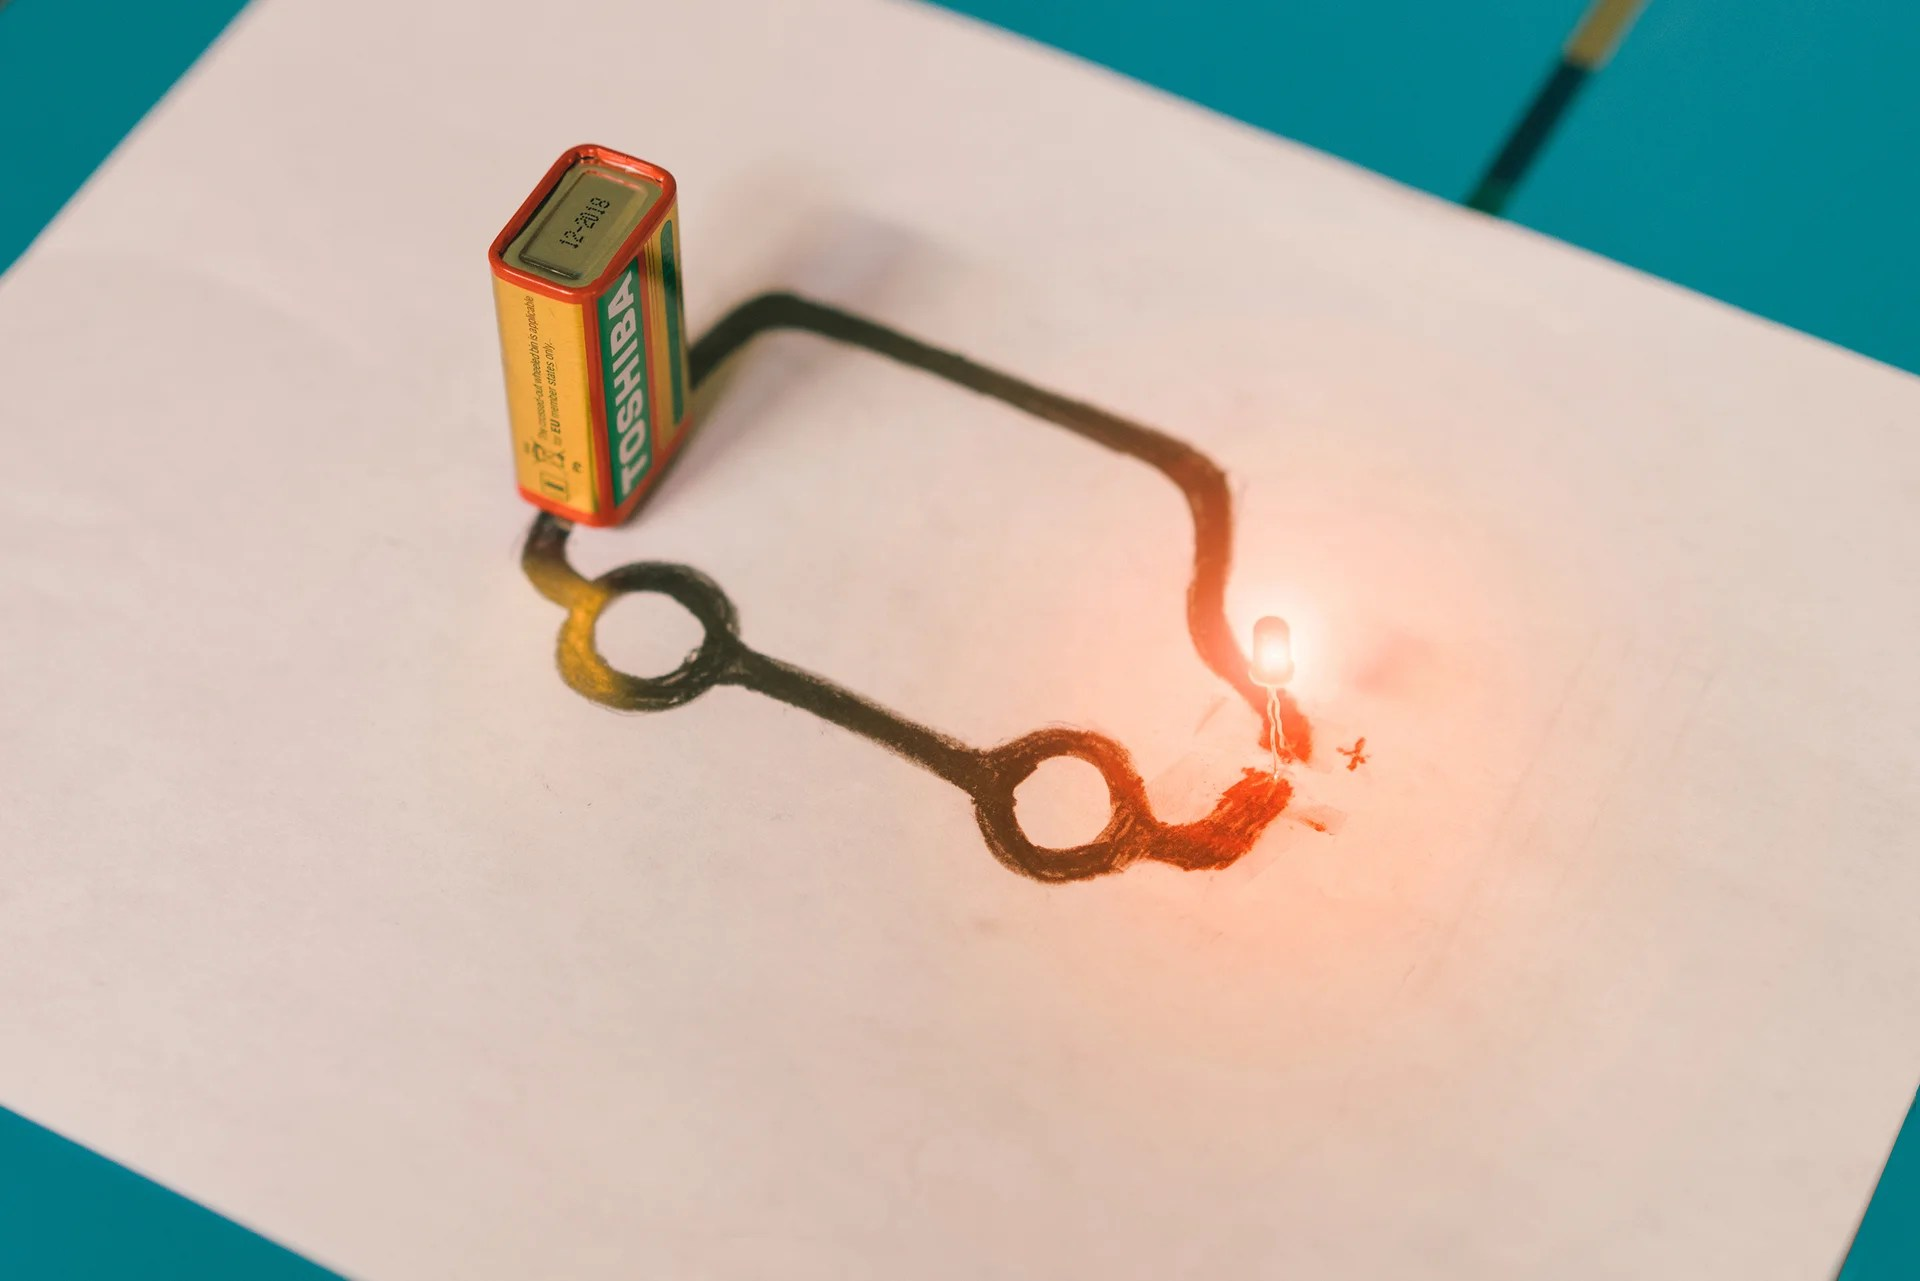 How To Make Your Own Circuit Board How To Save Money And Do It